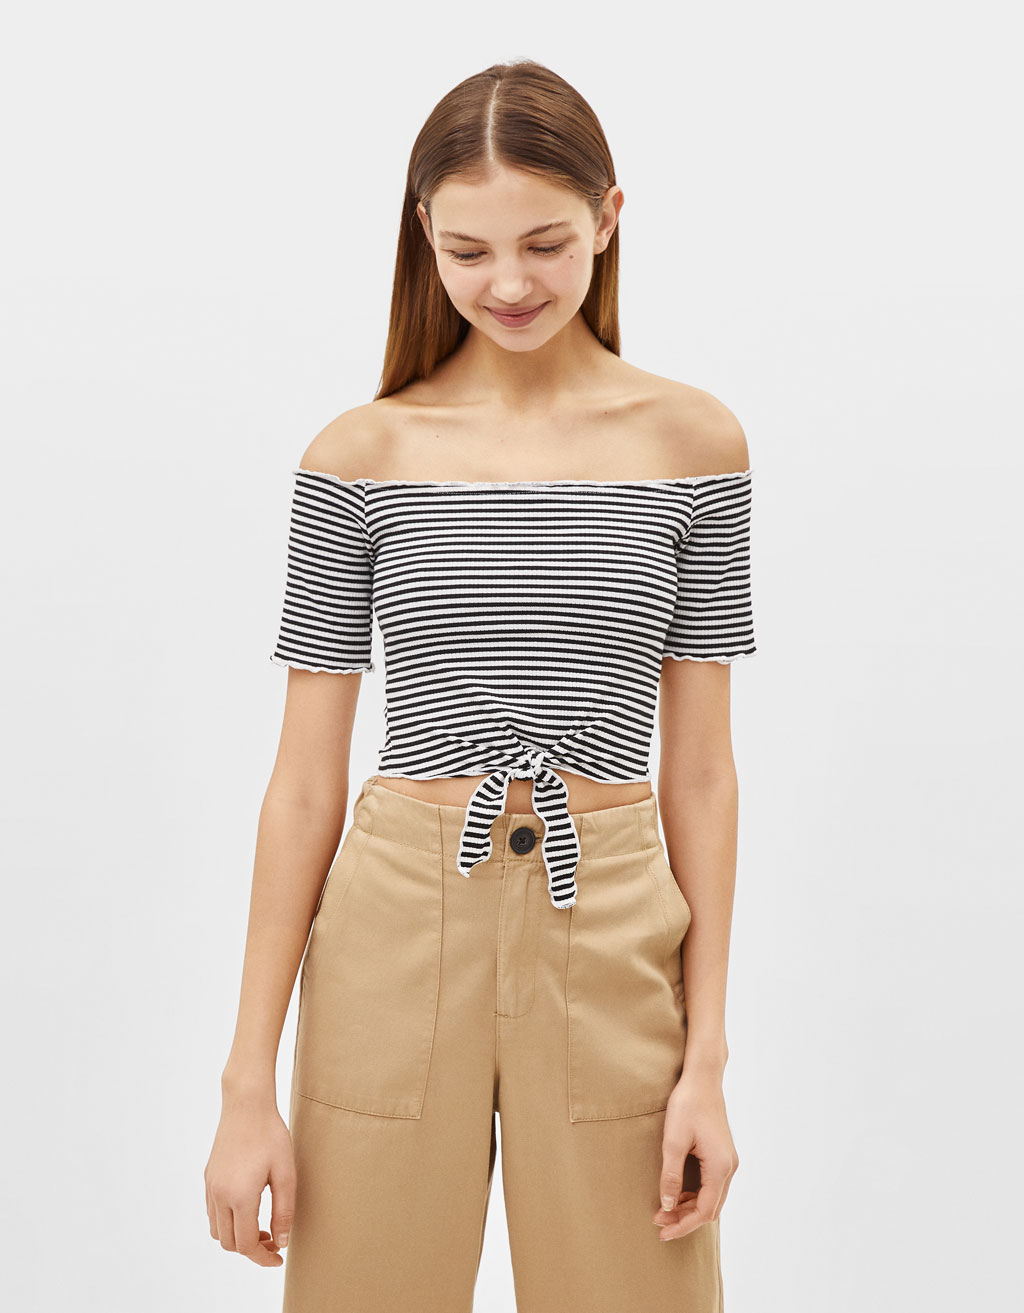 Camiseta mesonera cropped